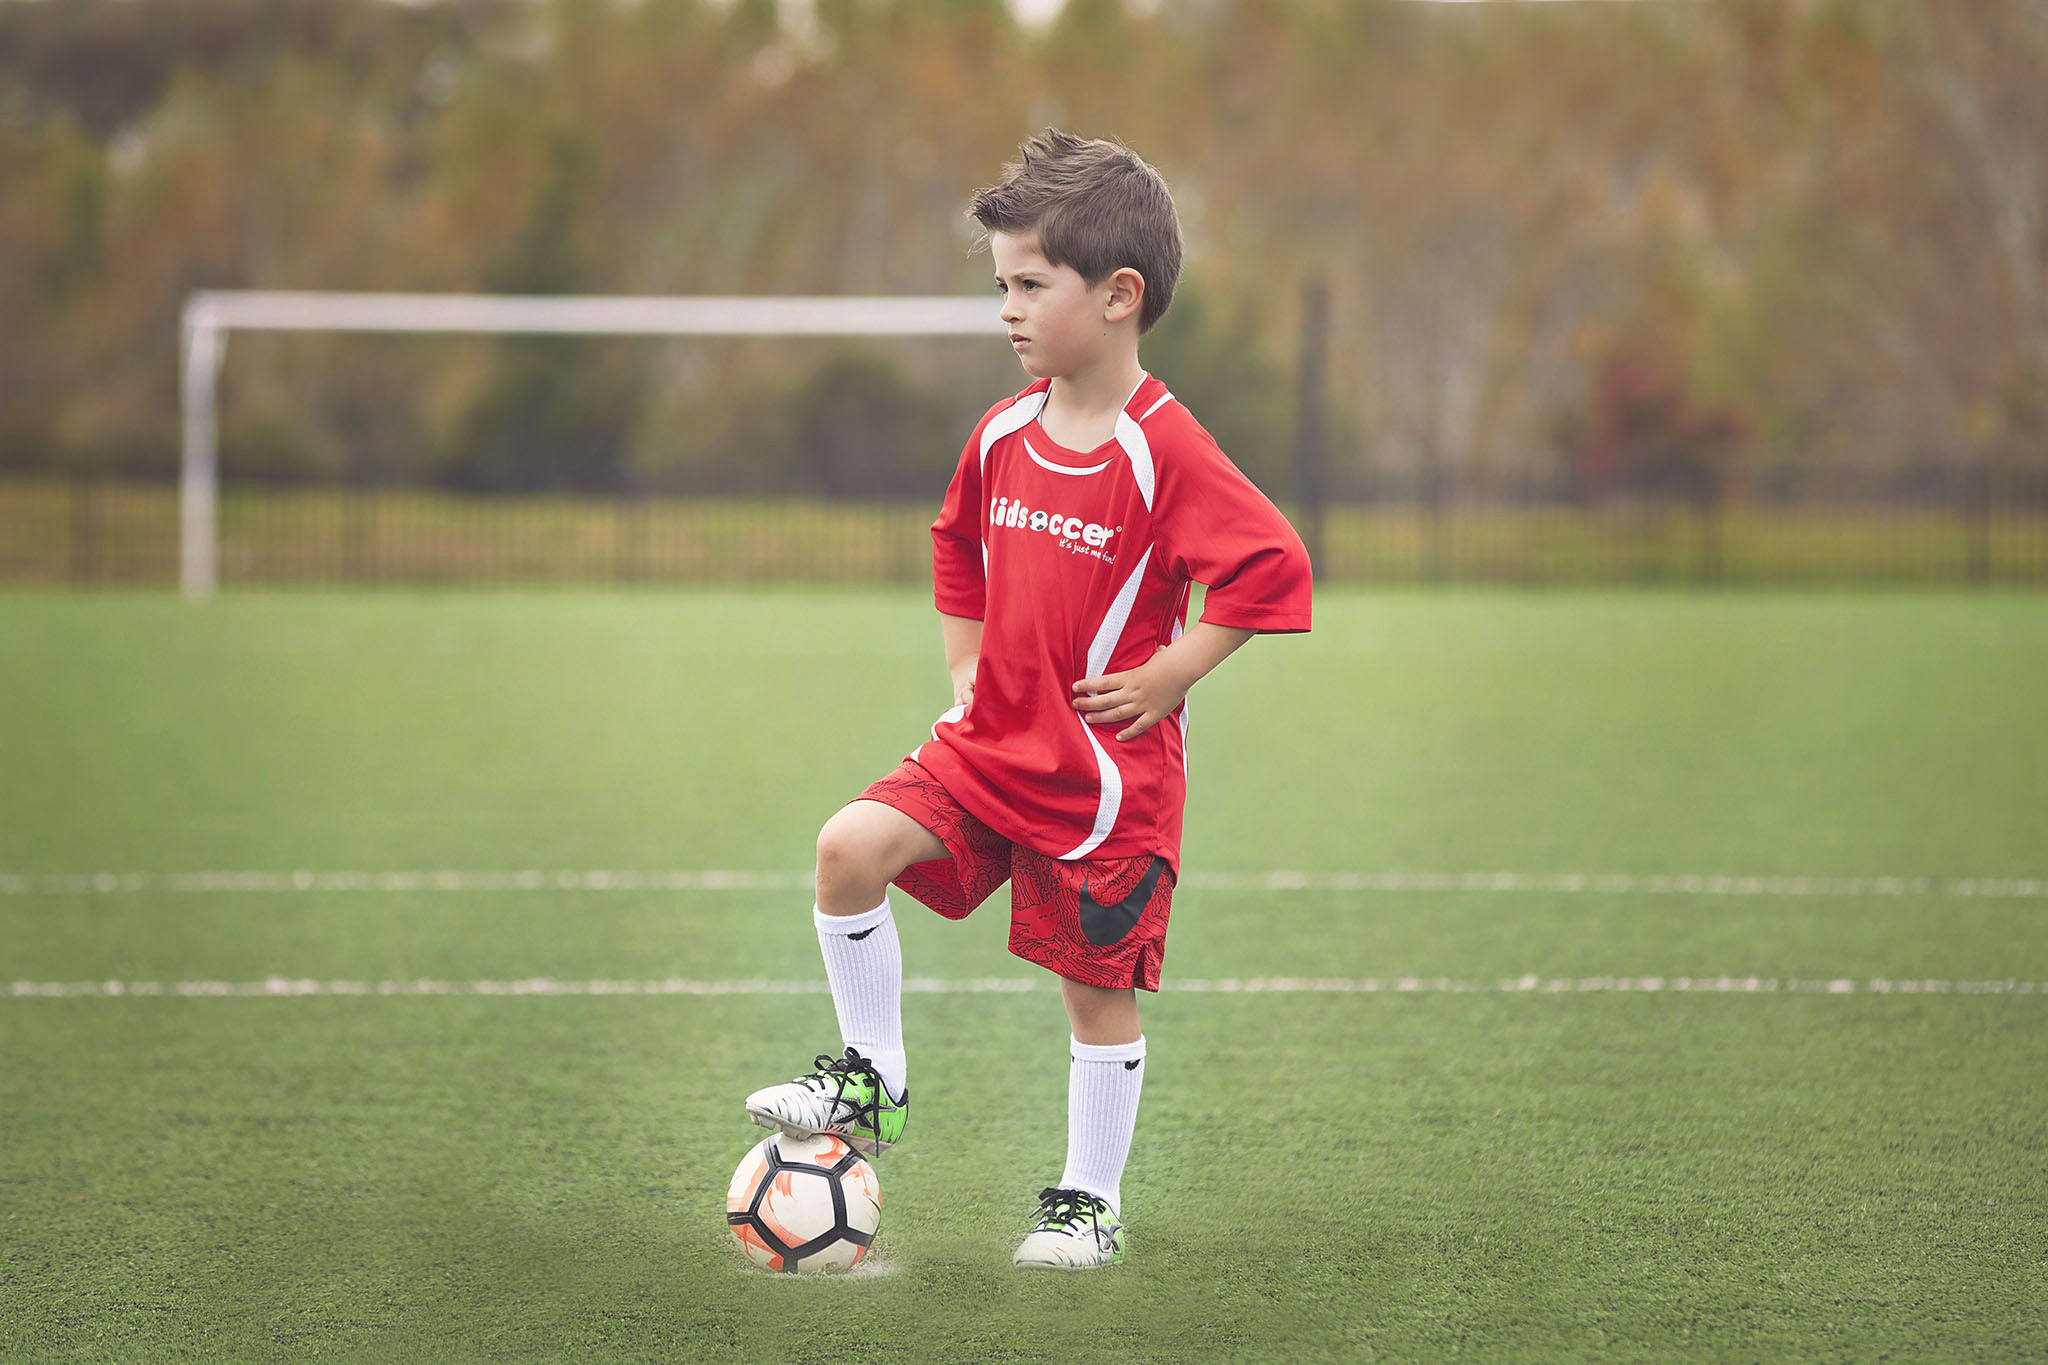 Child on the soccer pitch sports photography